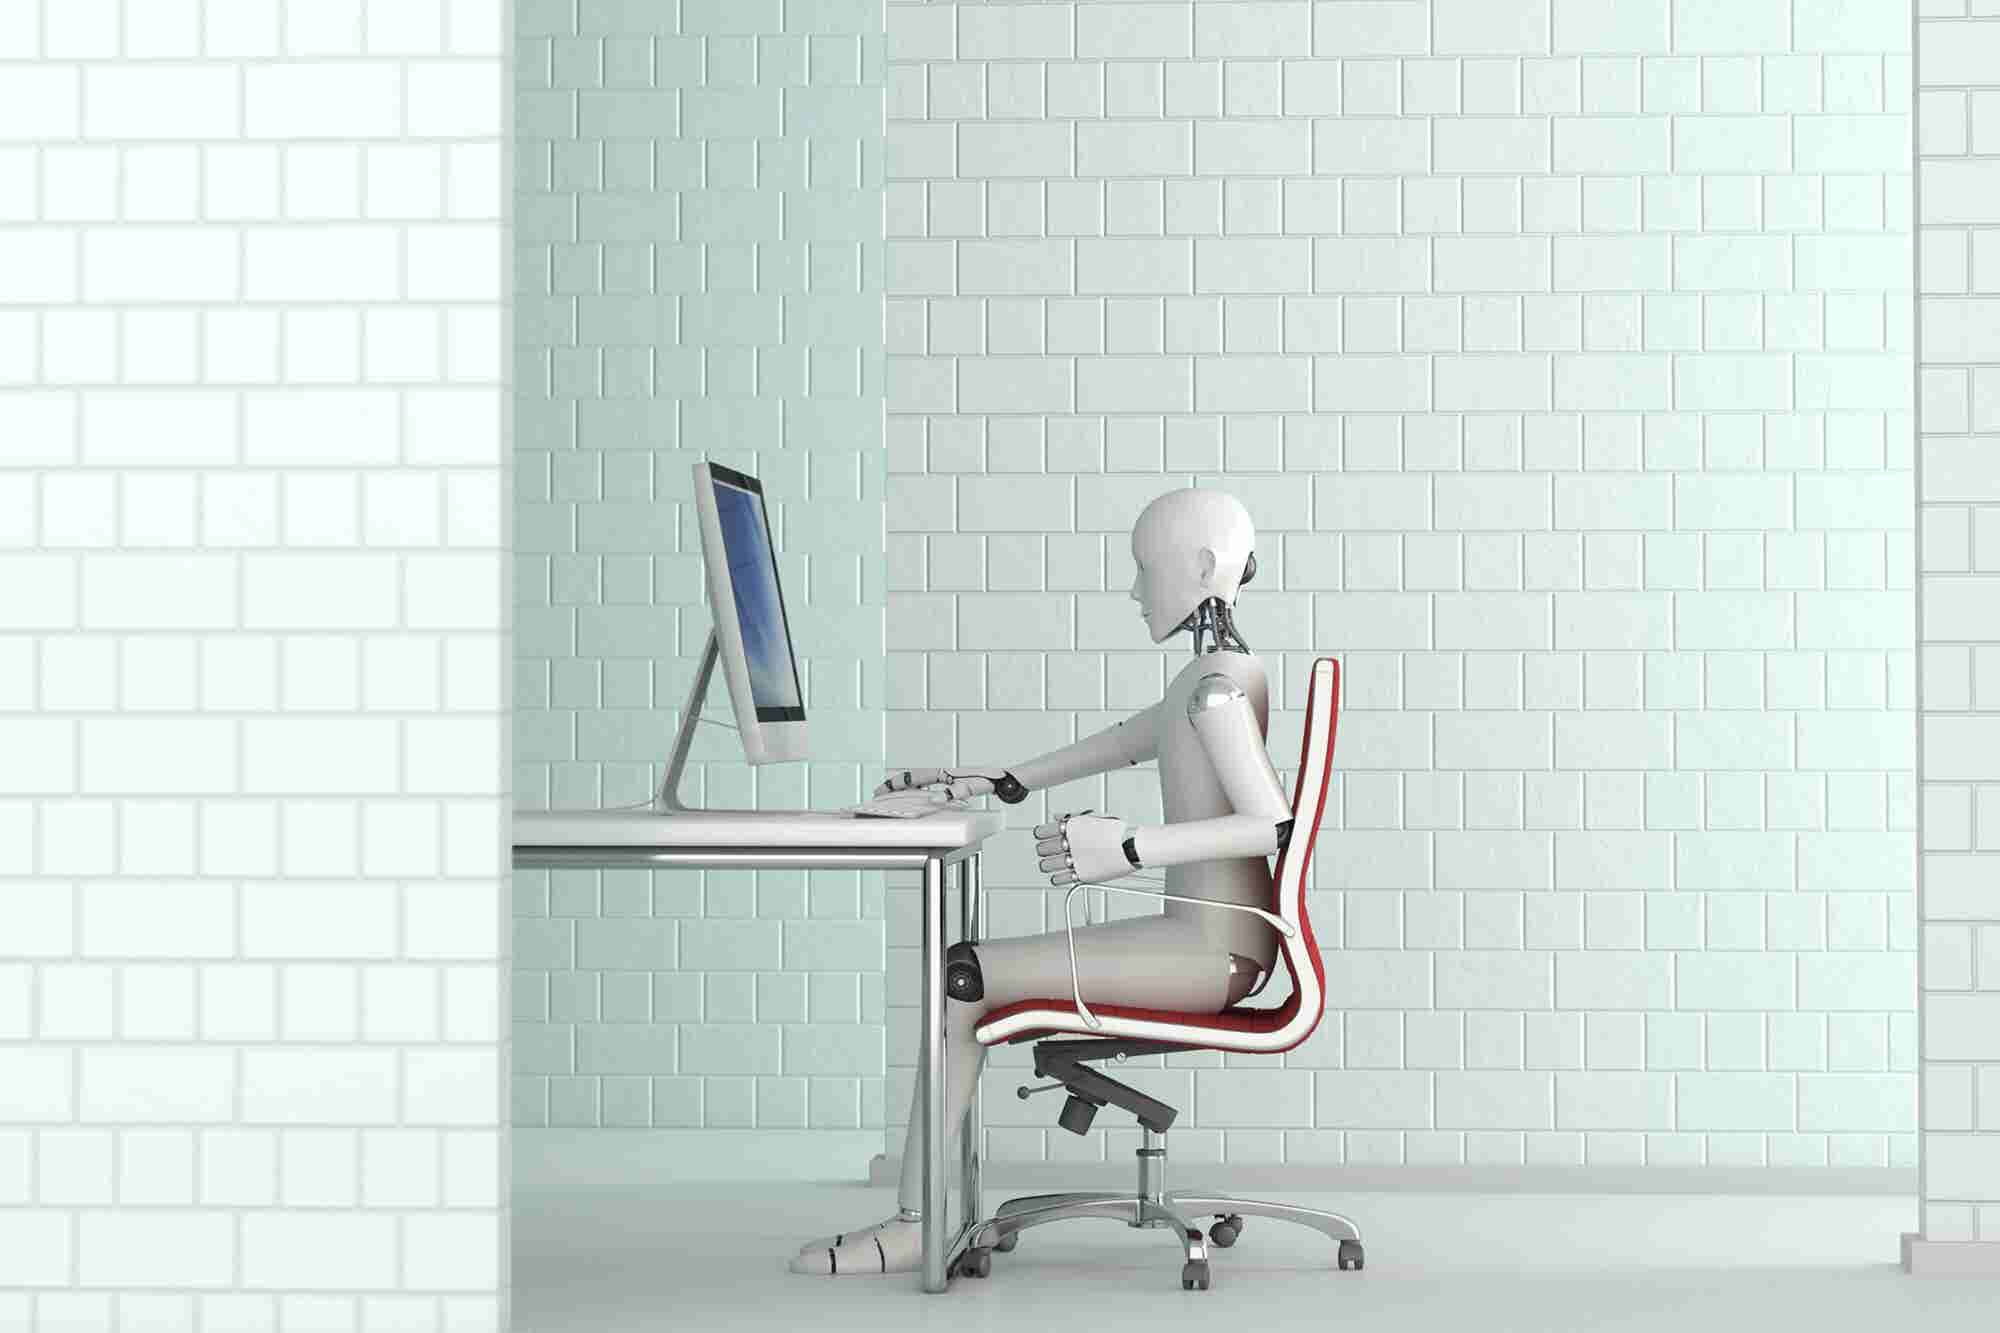 Should You Hire a Person for That Marketing Job or Buy a Robot?